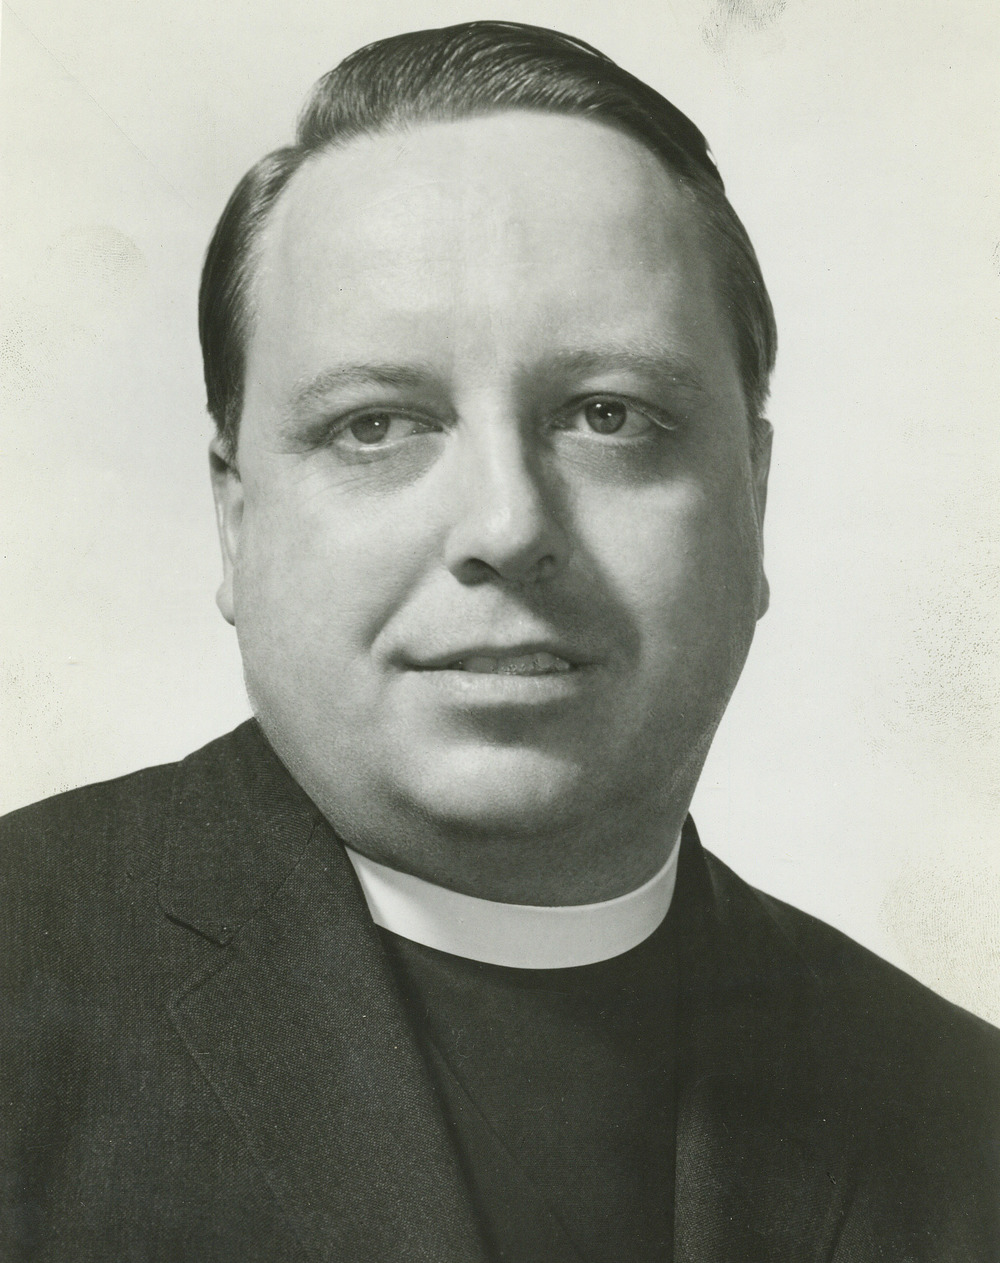 The Reverend Donald Lothrop Garfield, 7th Rector of Saint Mary's (1965 to 1978)